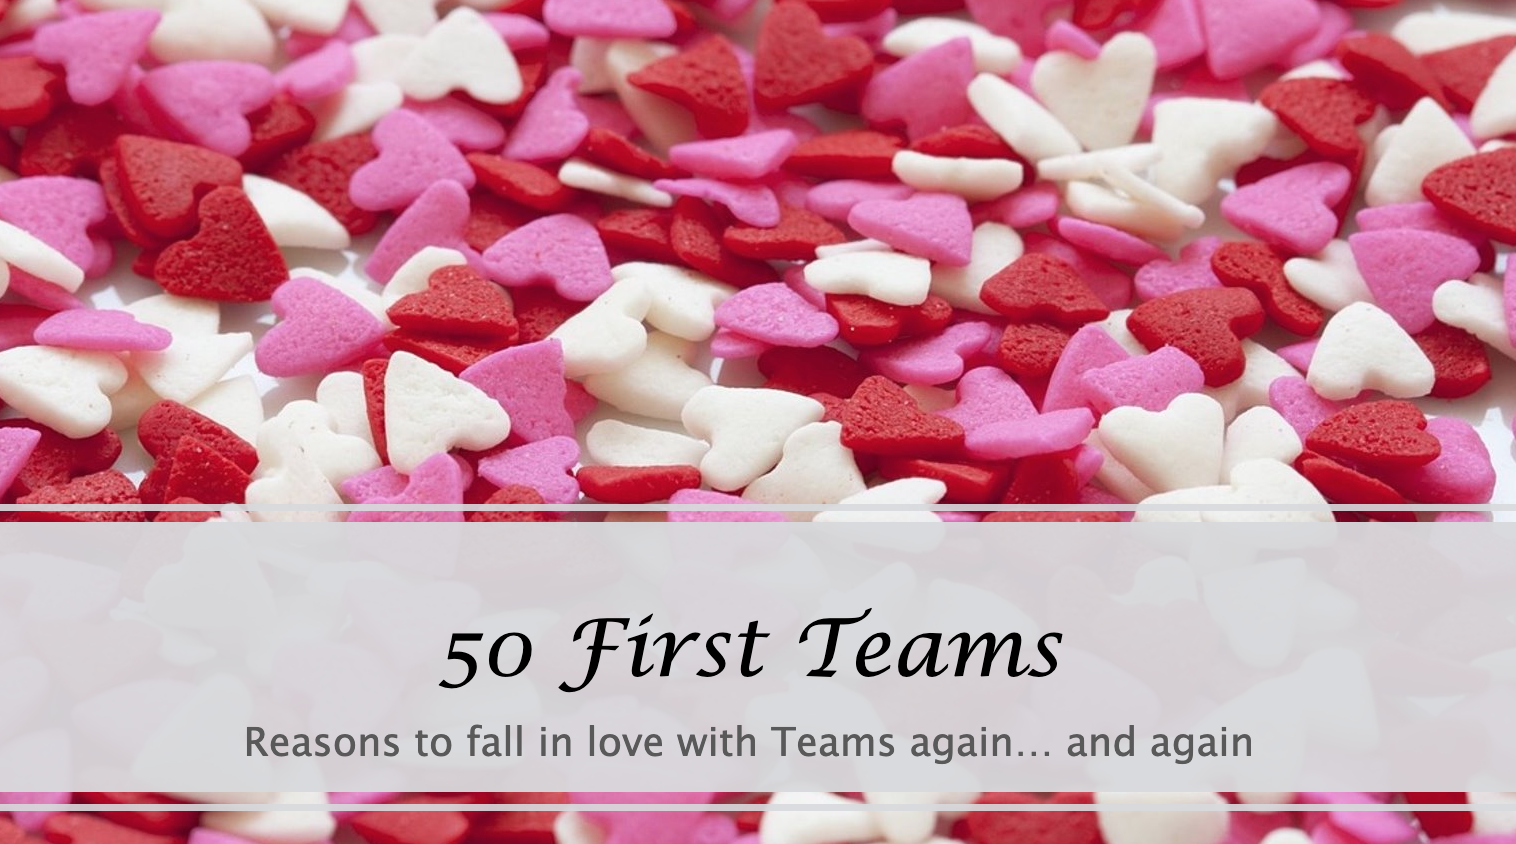 50 First Teams